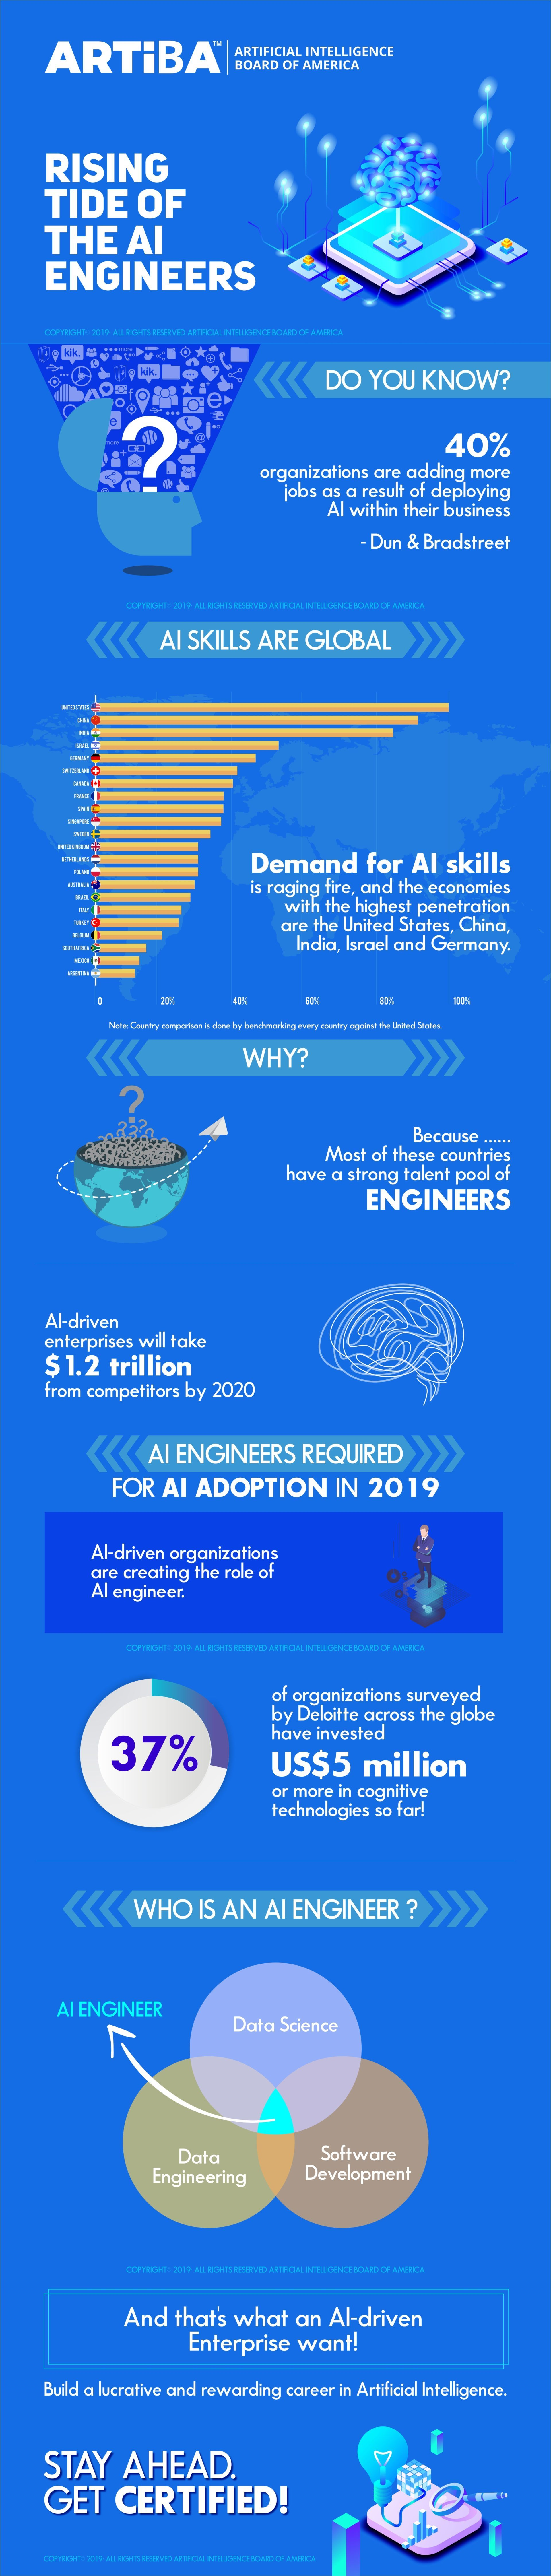 Rising Tide Of Artificial Intelligence Engineers In 2019